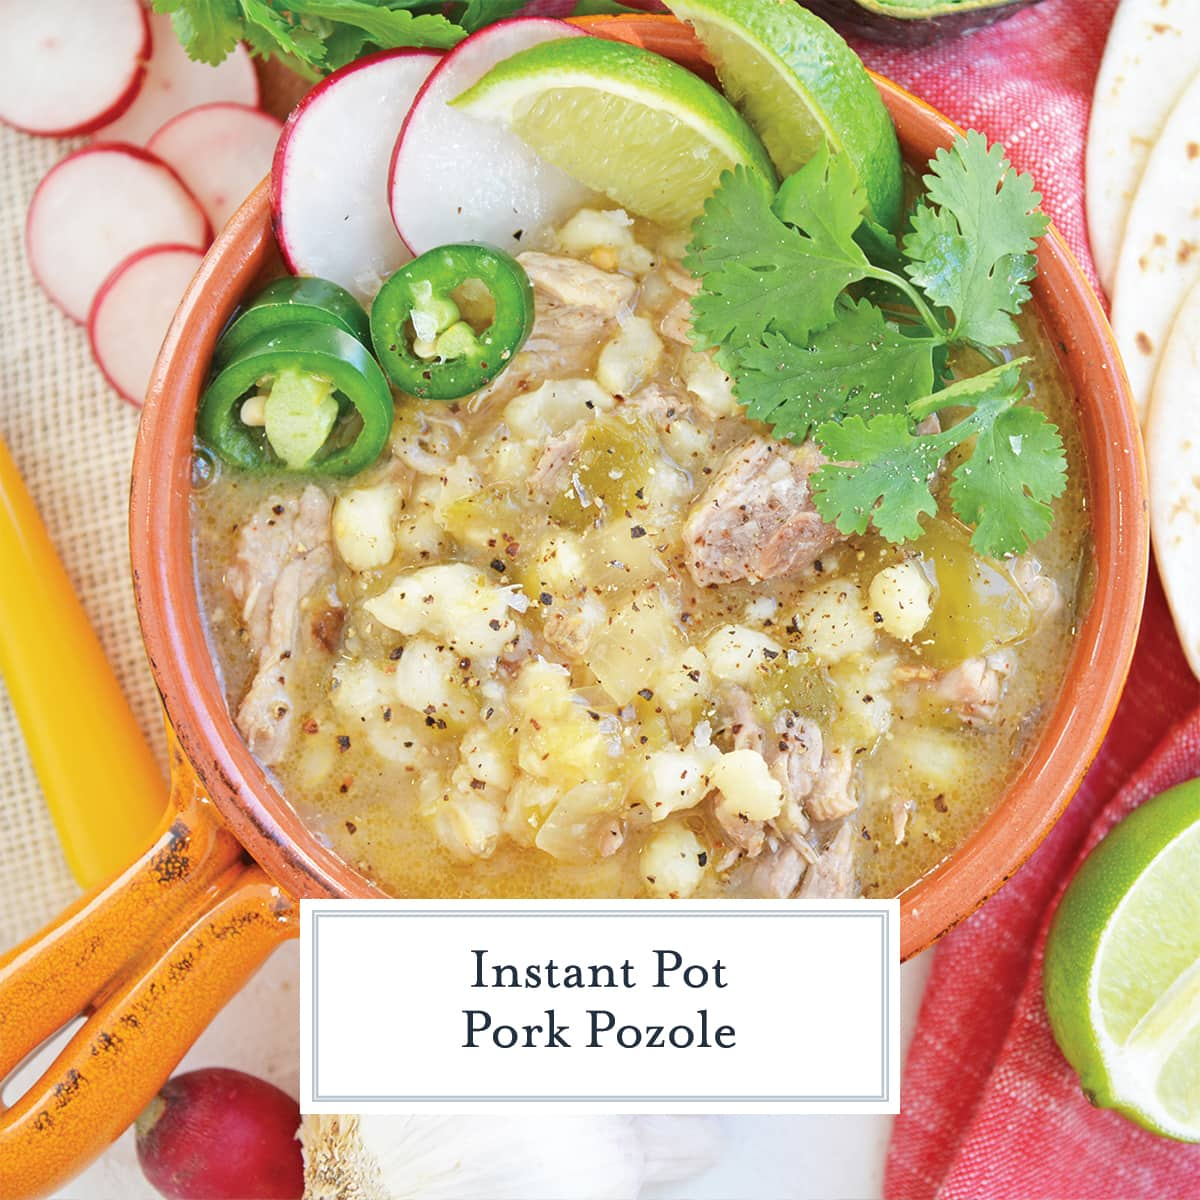 garnished pork pozole in orange bowl